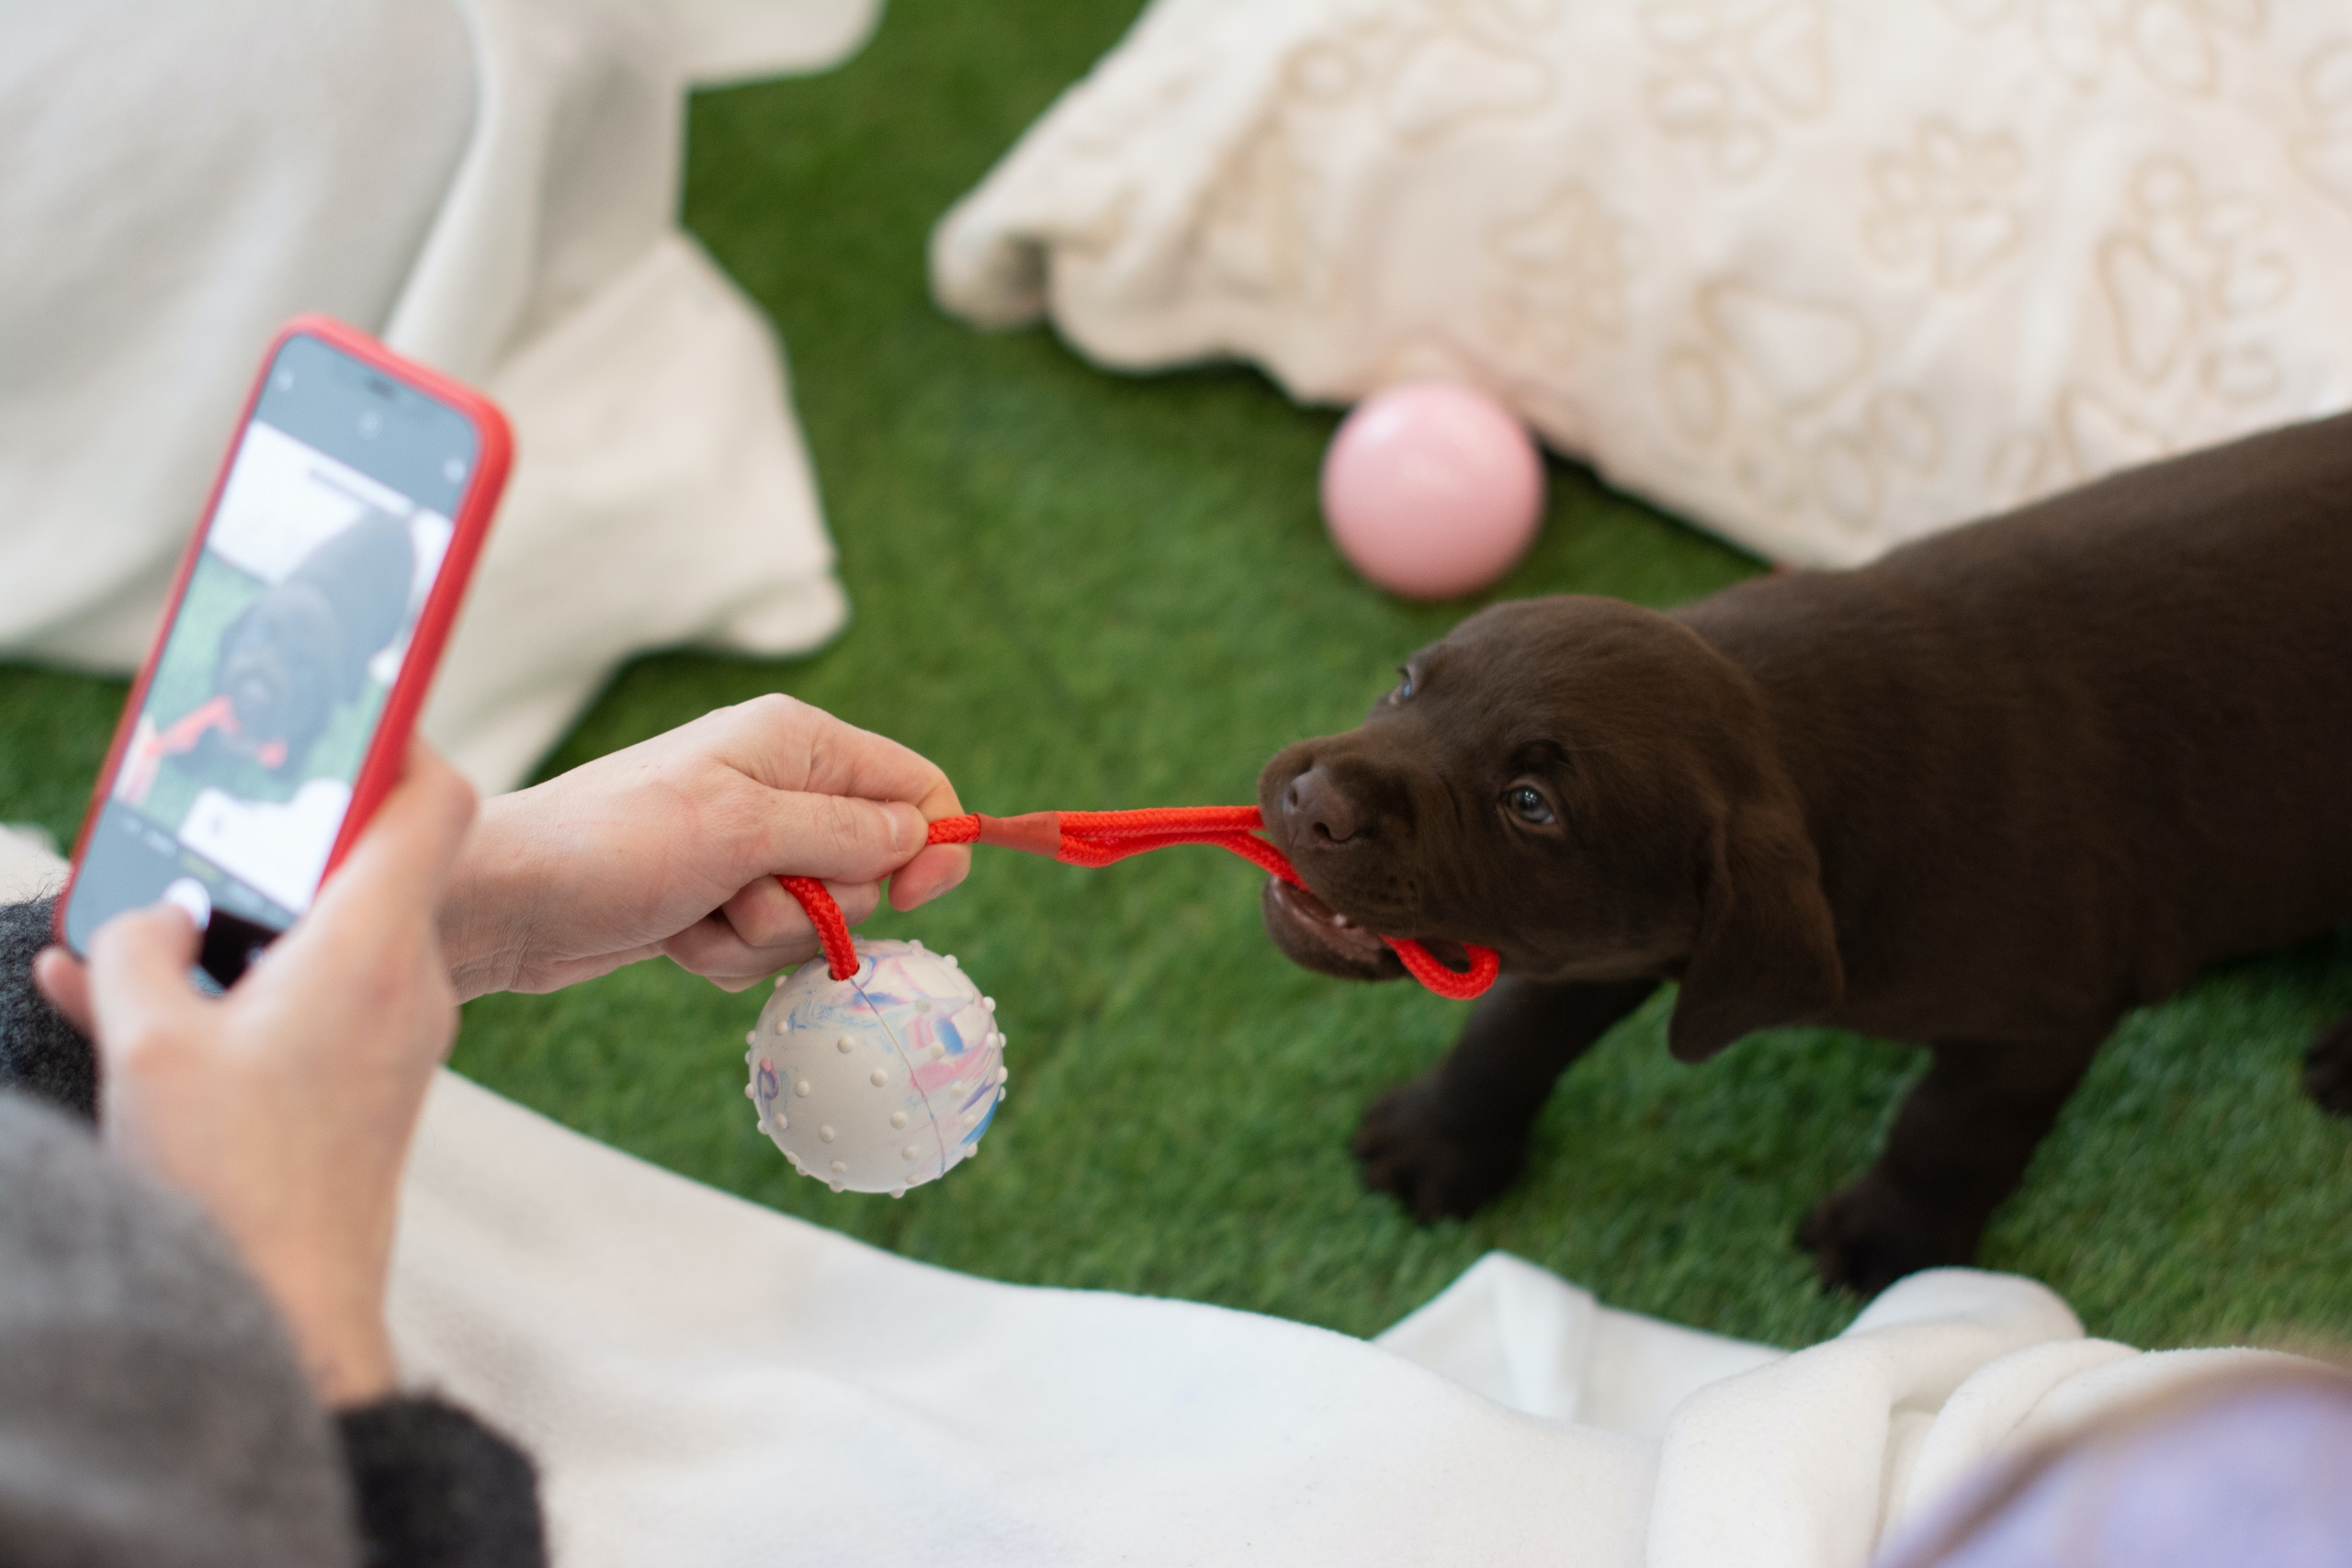 The best puppy toys for teething 2021 DSC 3522